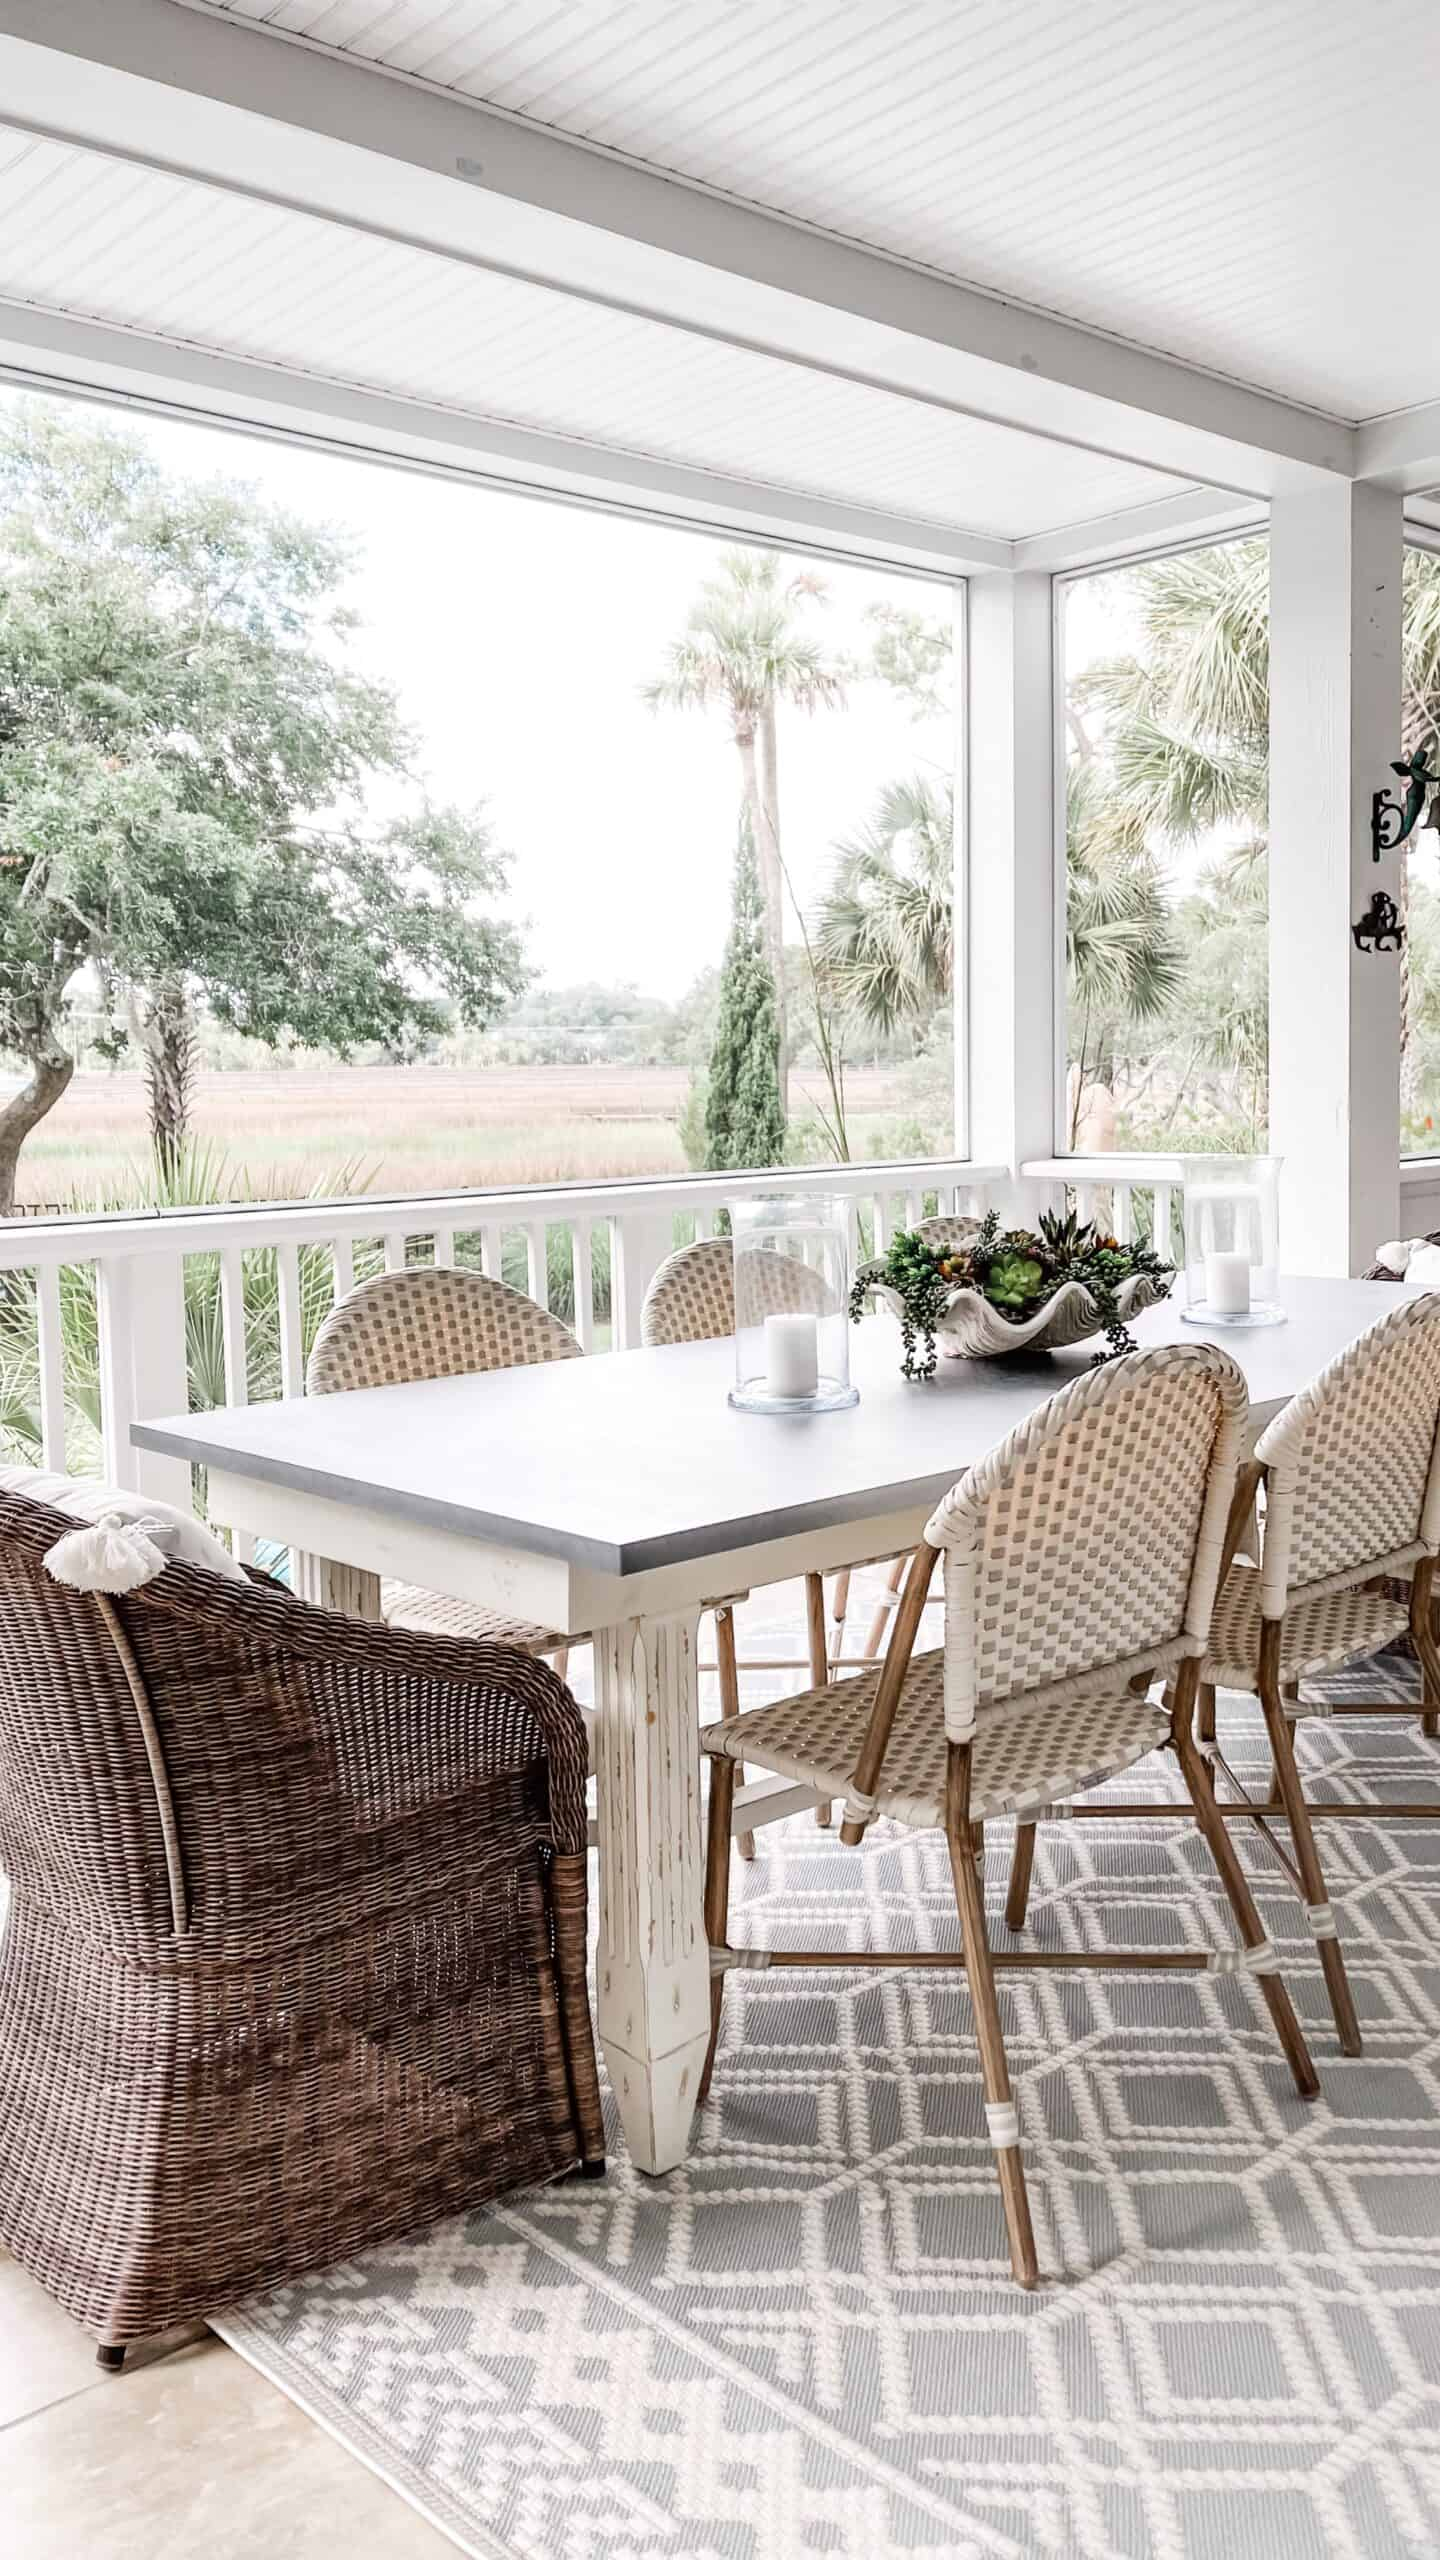 Outdoor space with blue diamond rug from Boutique Rugs.